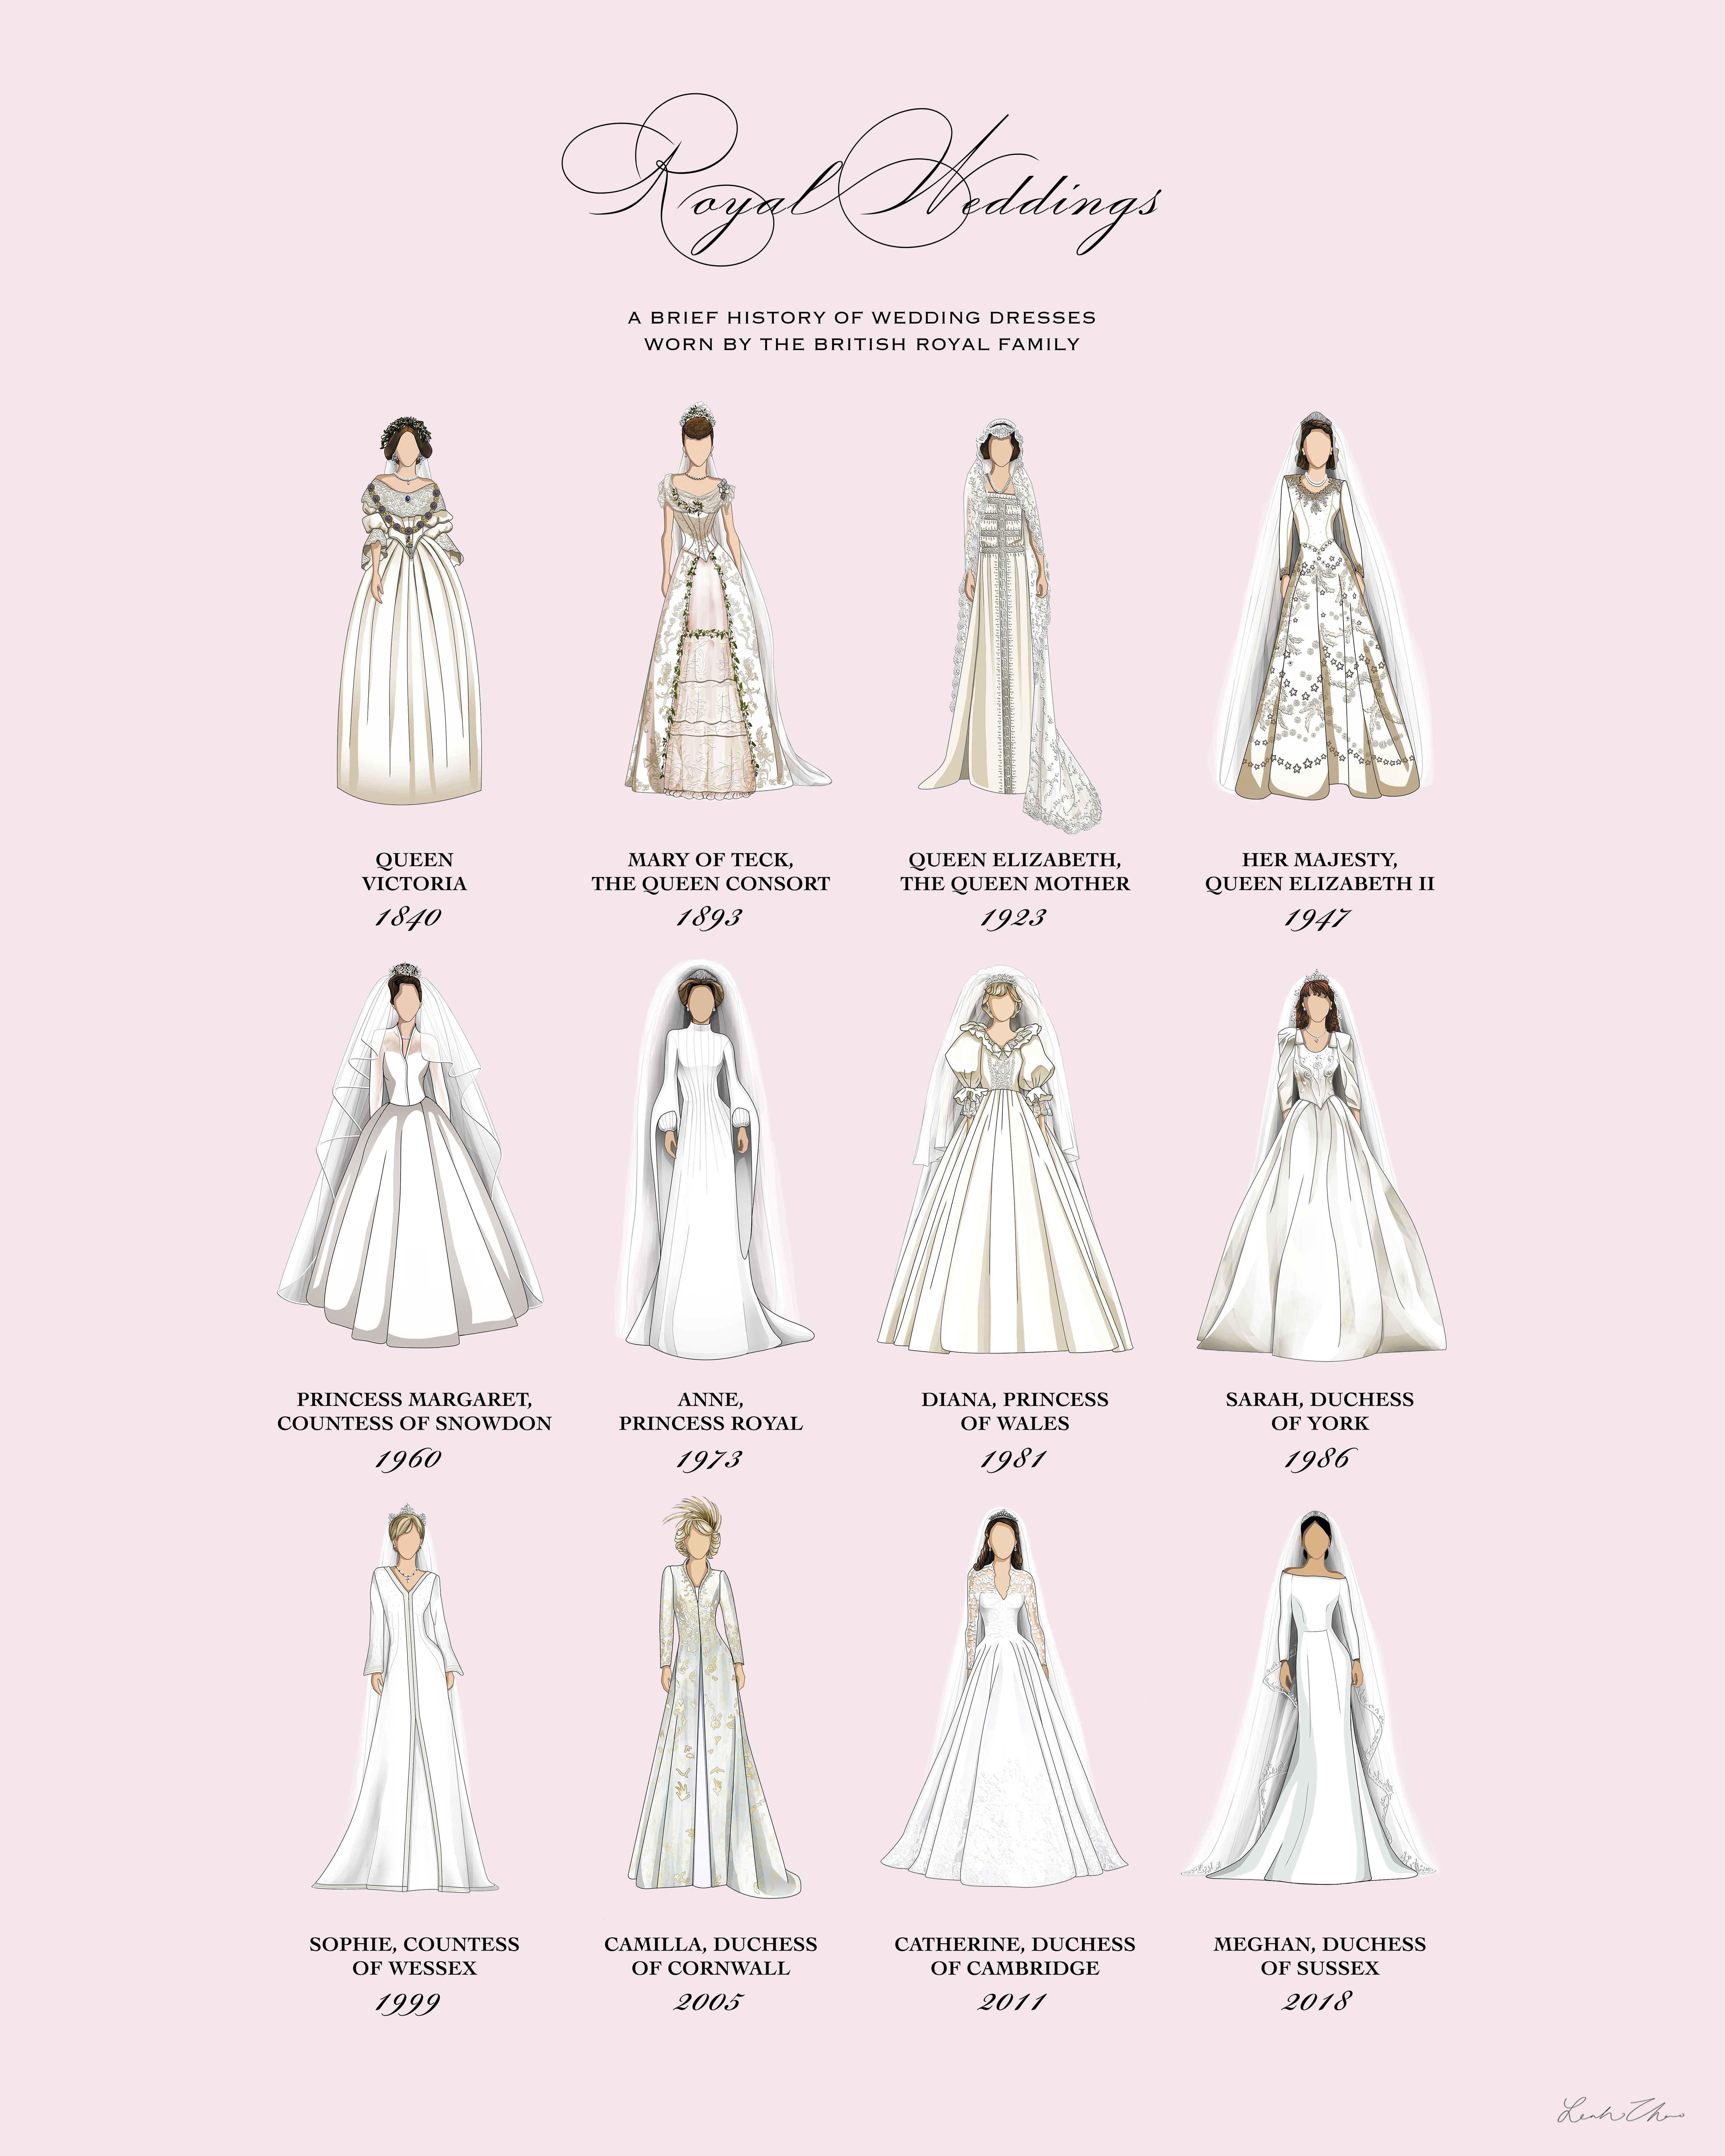 Infographic Showing Some Iconic British Royal Wedding Gowns Throughout History Designed By Leah Wedding Dress Sketches Royal Wedding Dress Wedding Dress Types